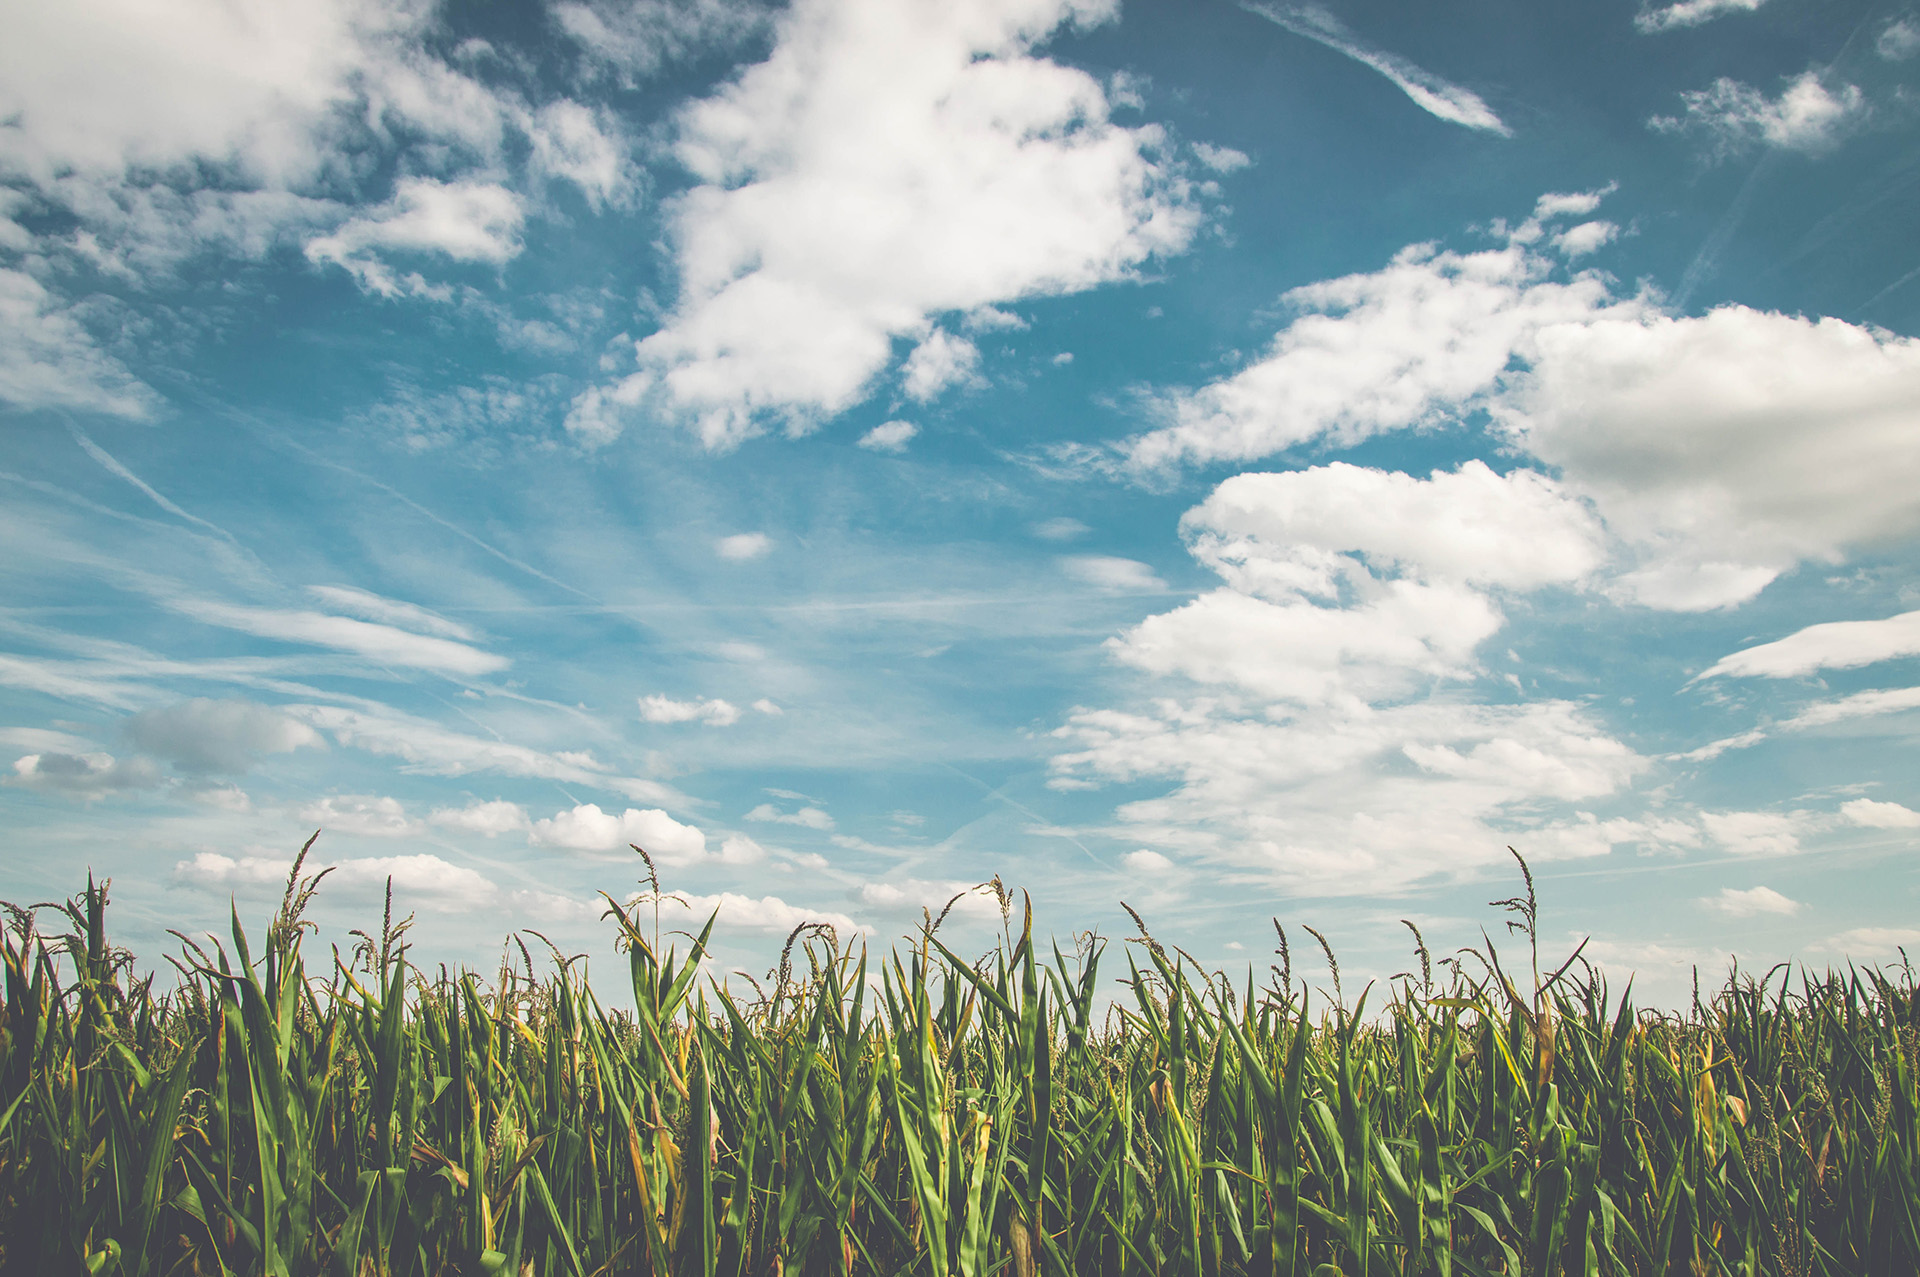 Grass sprouting beneath a bright blue sky with clear clouds